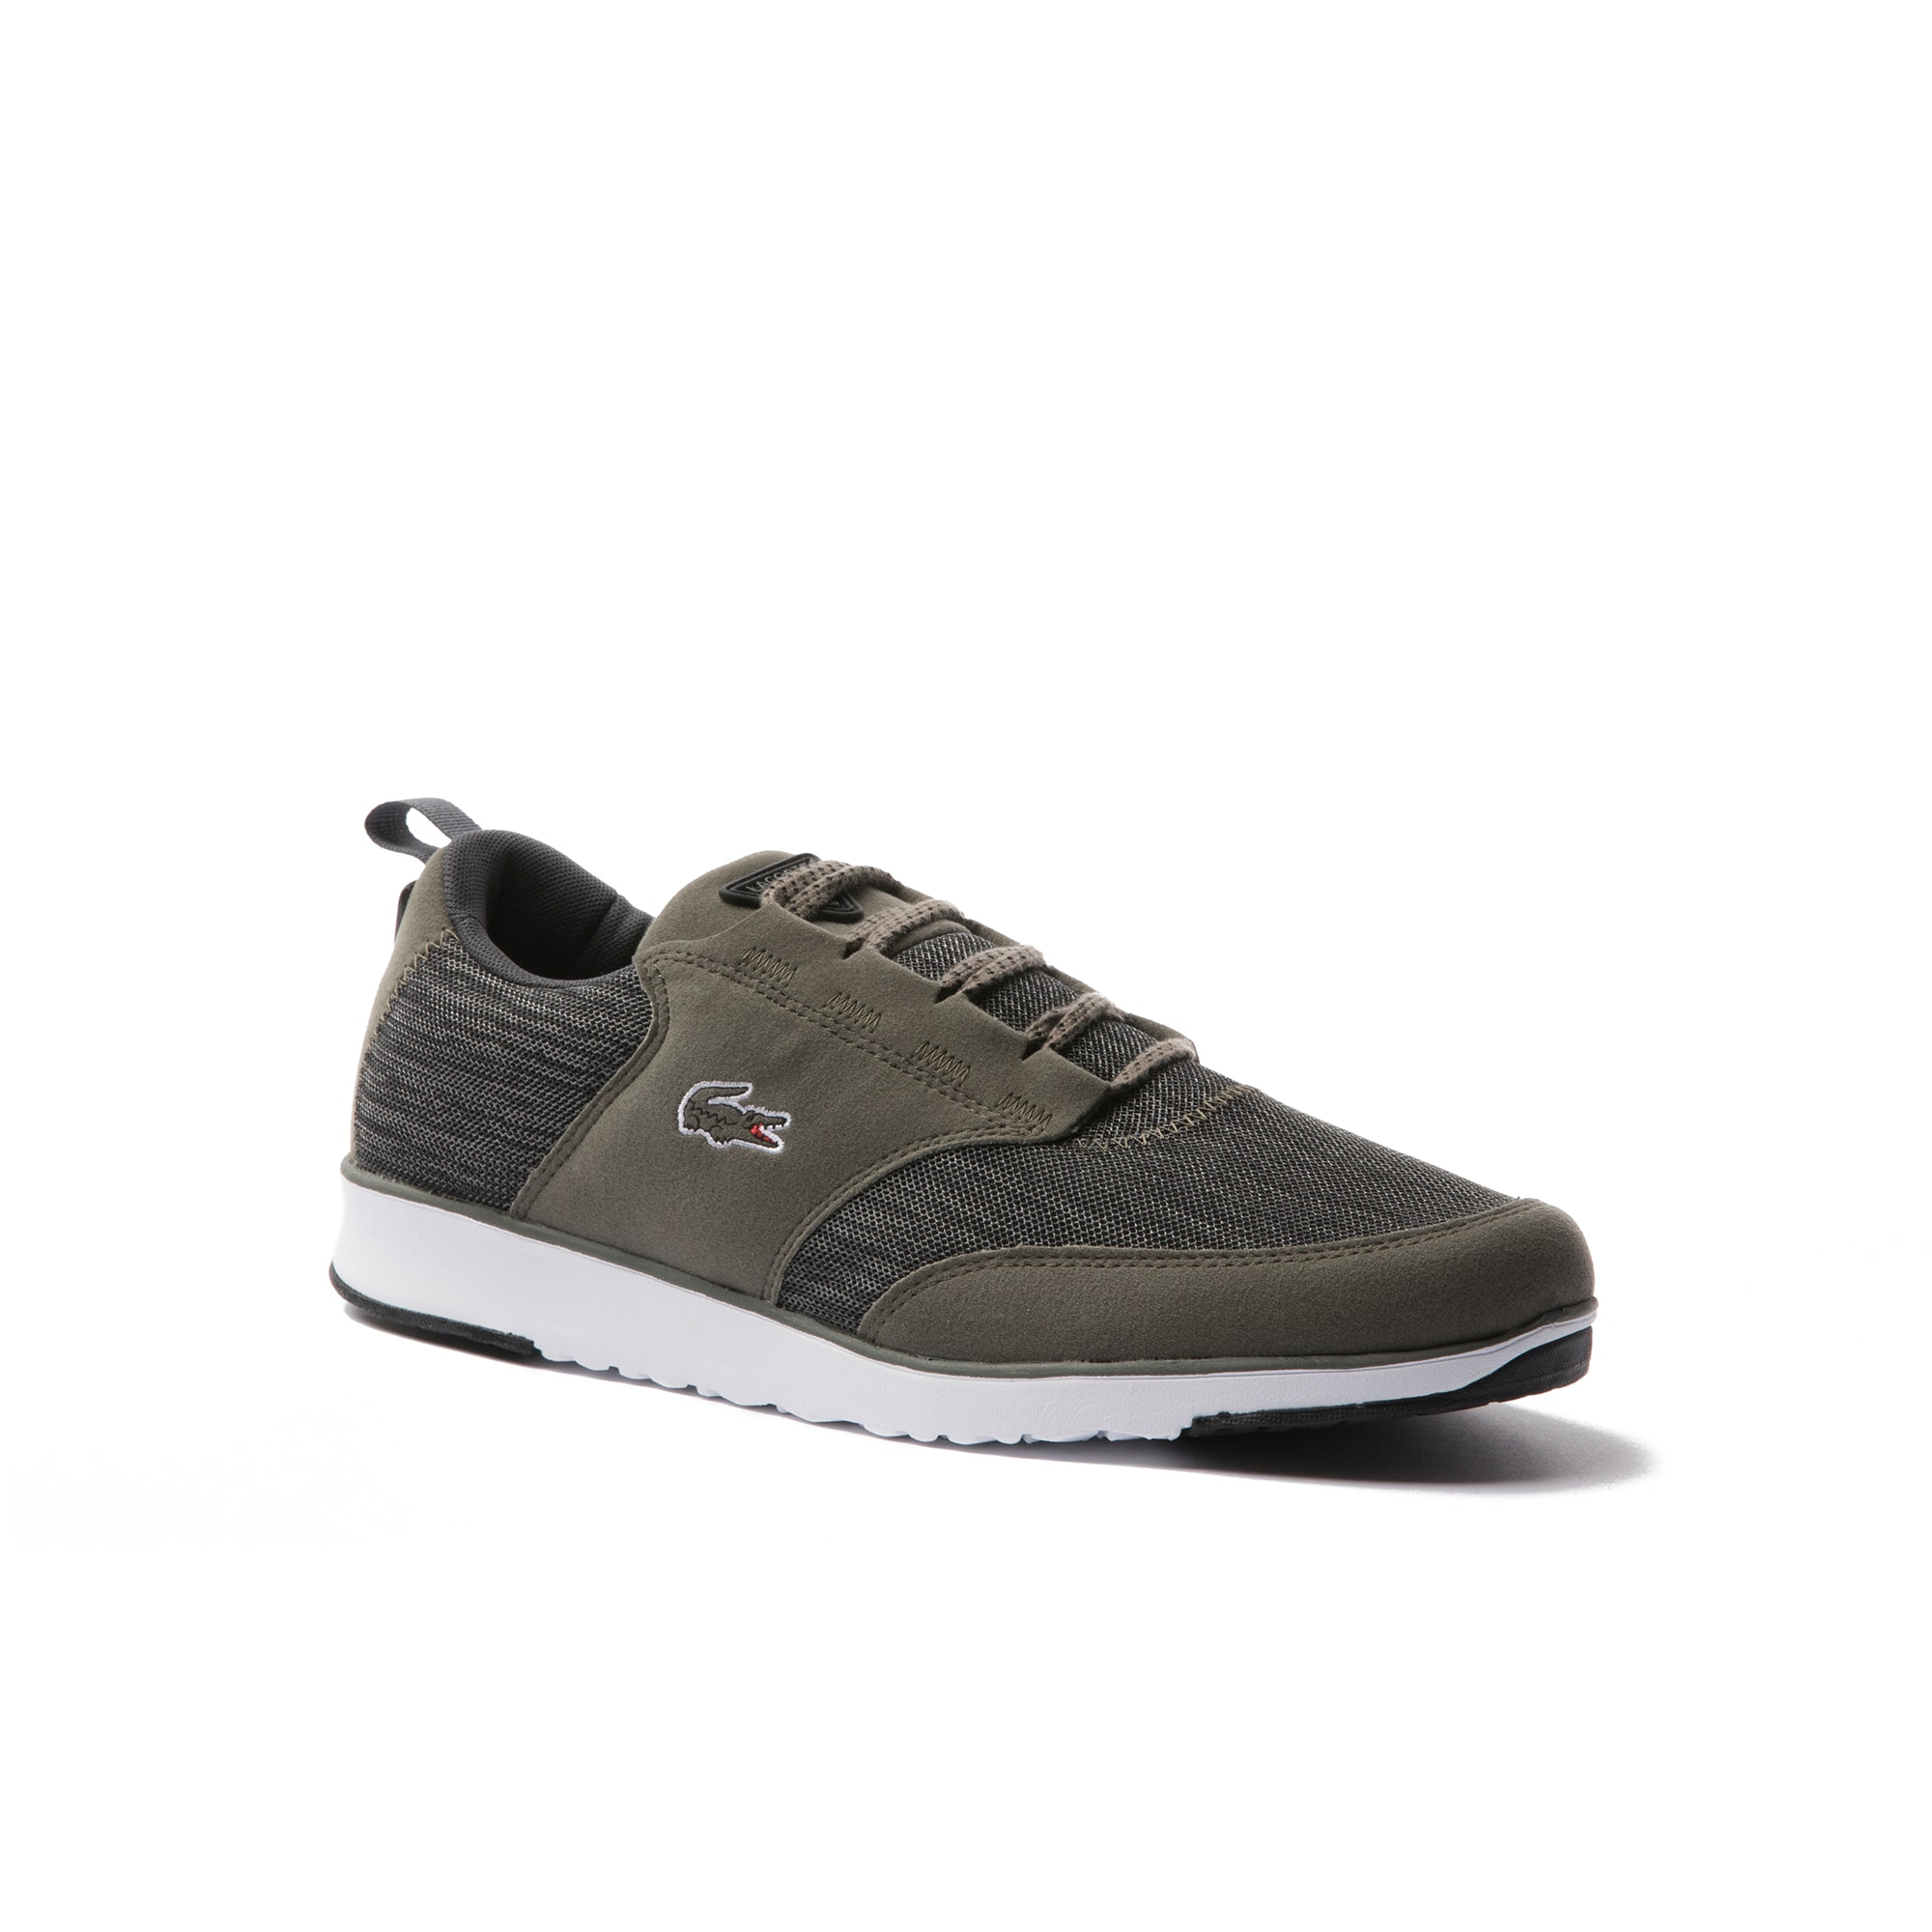 Lacoste MEN'S L.IGHT TEXTILE SNEAKERS YgUyS